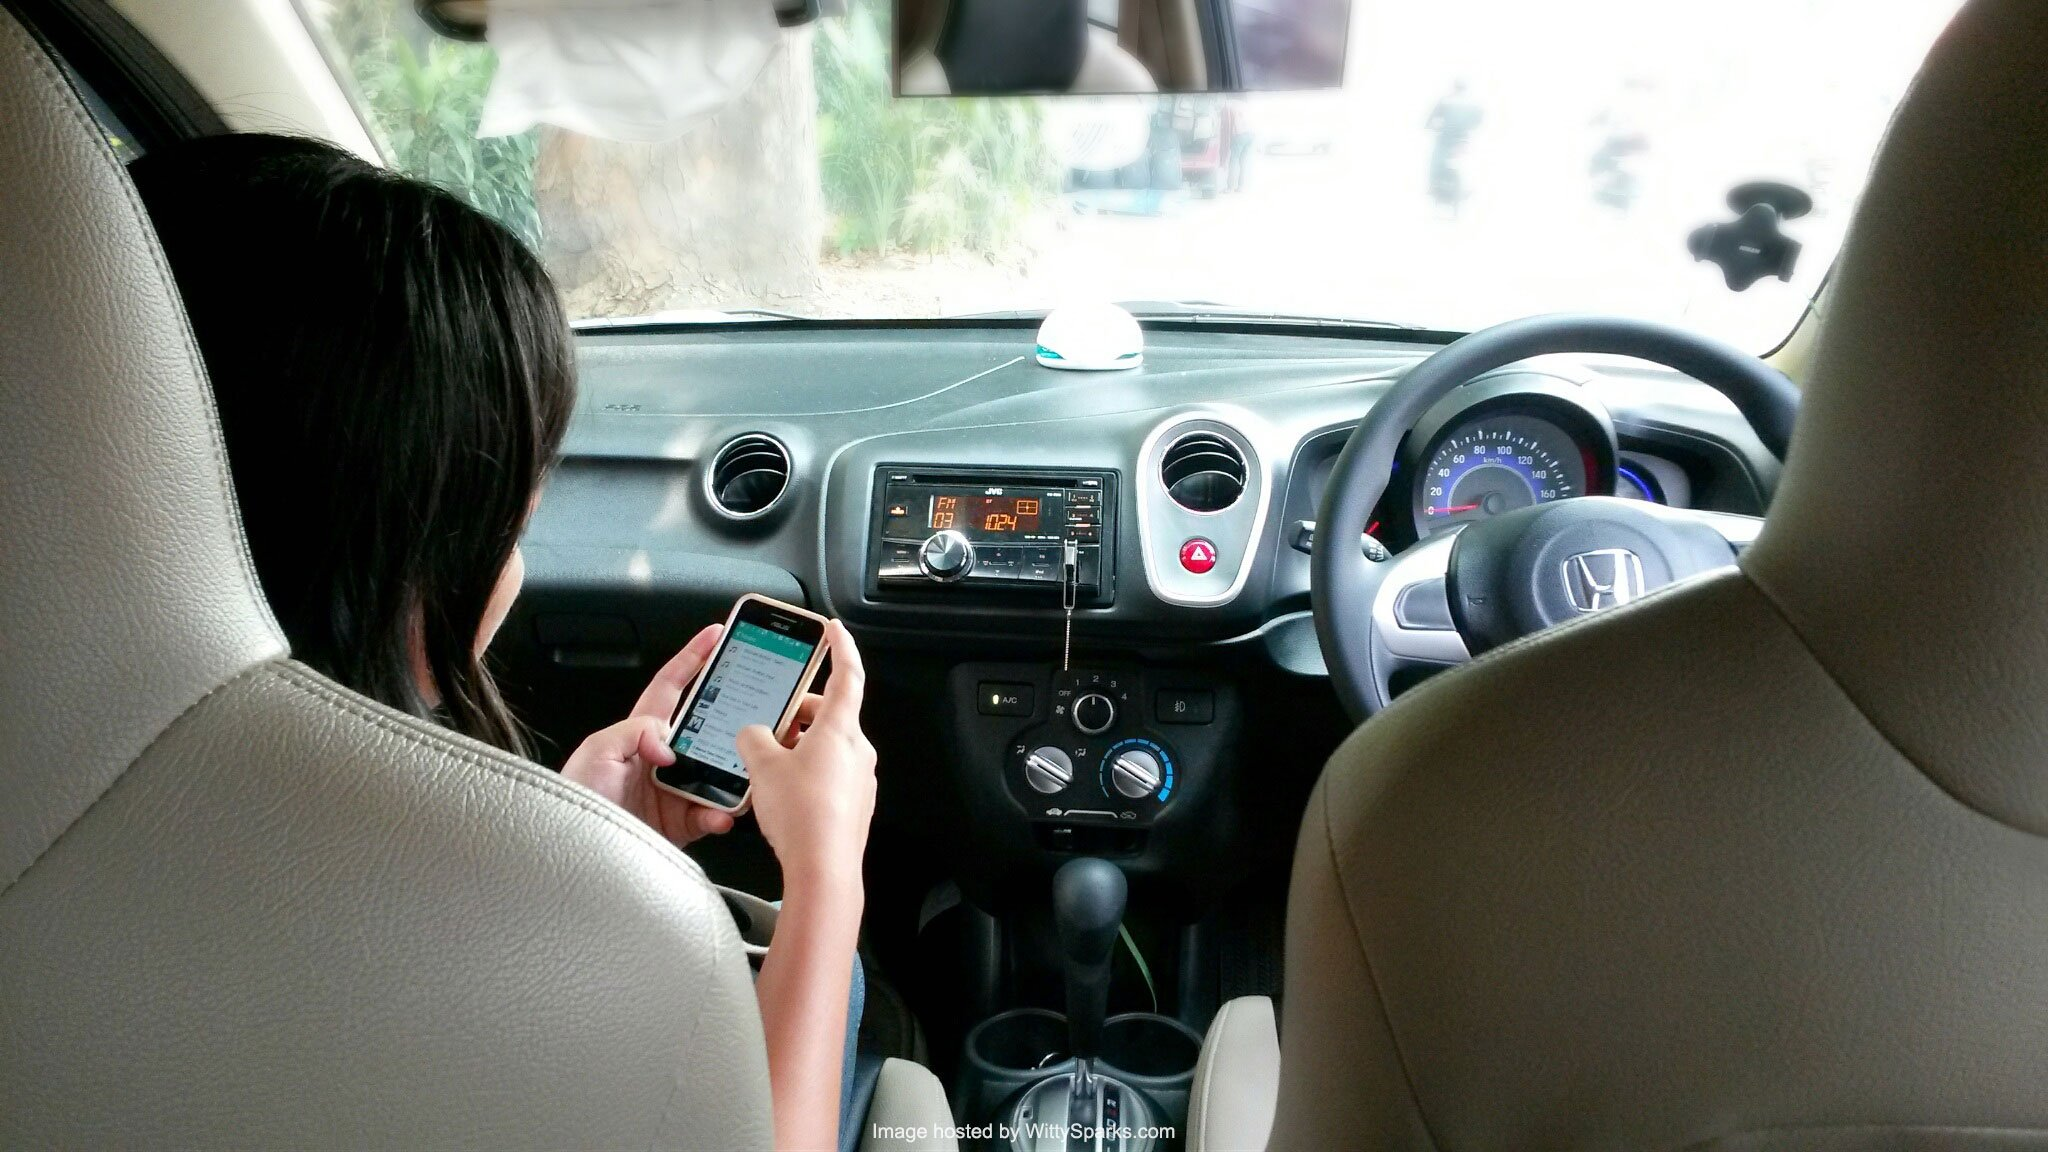 Gadgets for your Car